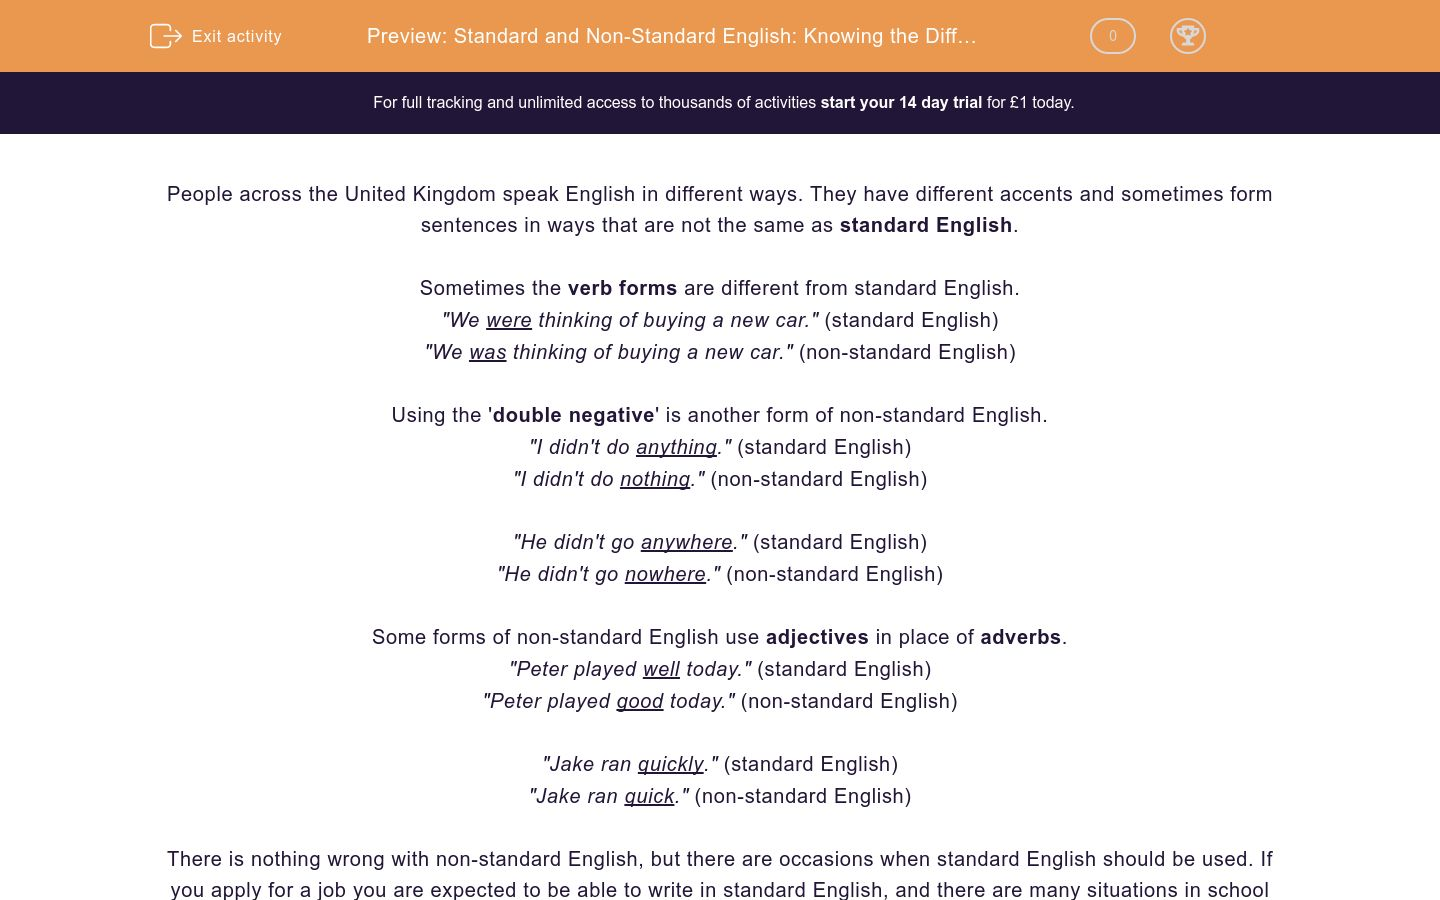 Standard and Non-Standard English: Knowing the Difference